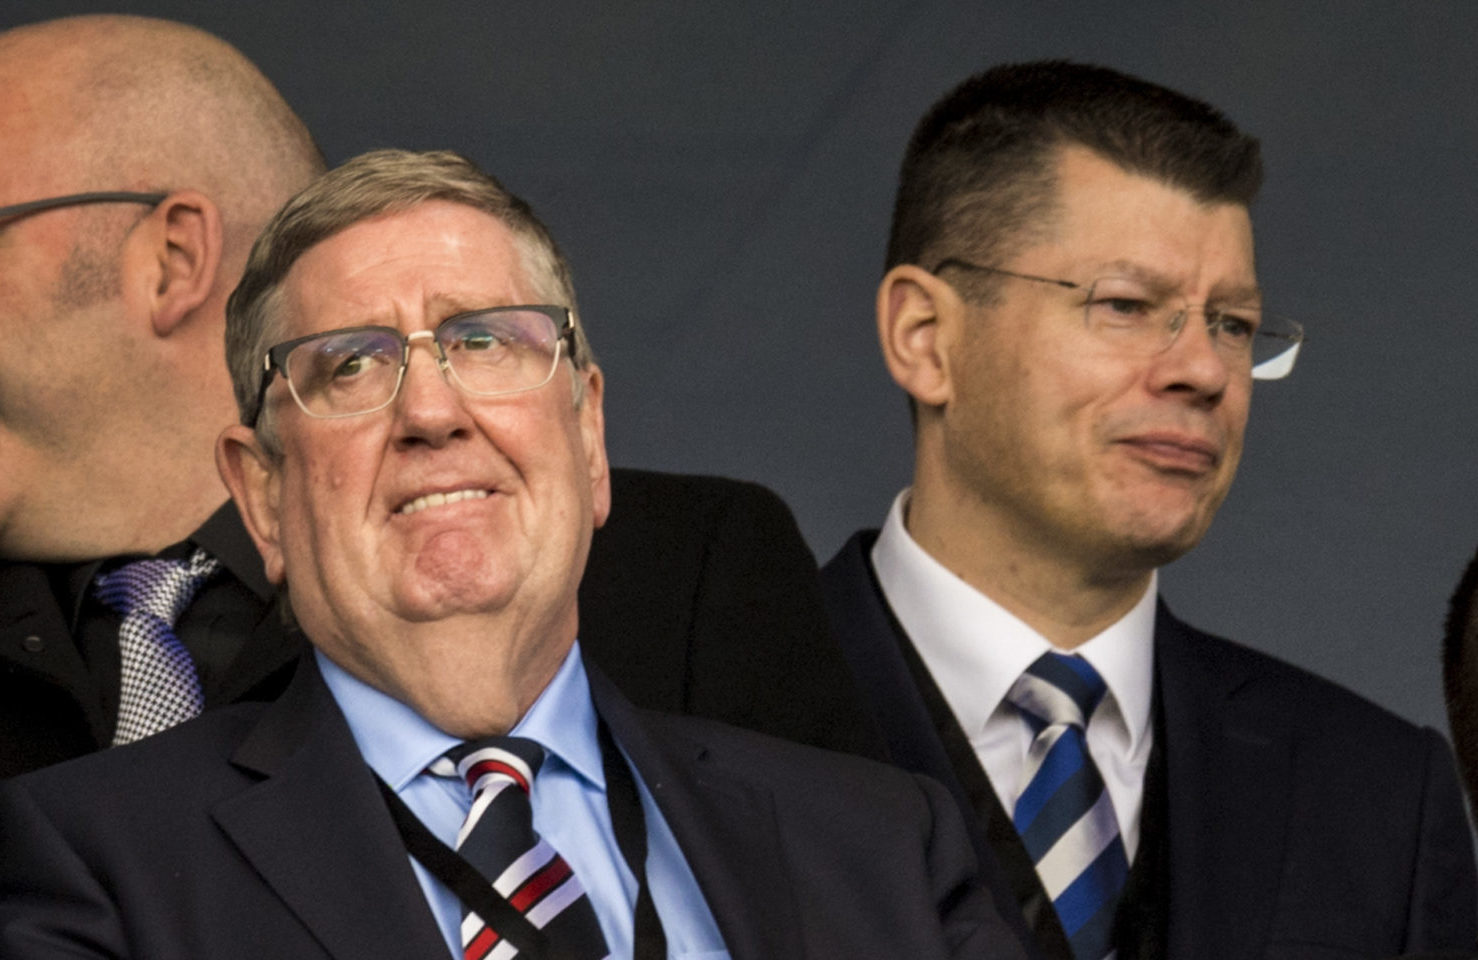 Rangers chairman Douglas Park and SPFL chief executive Neil Doncaster